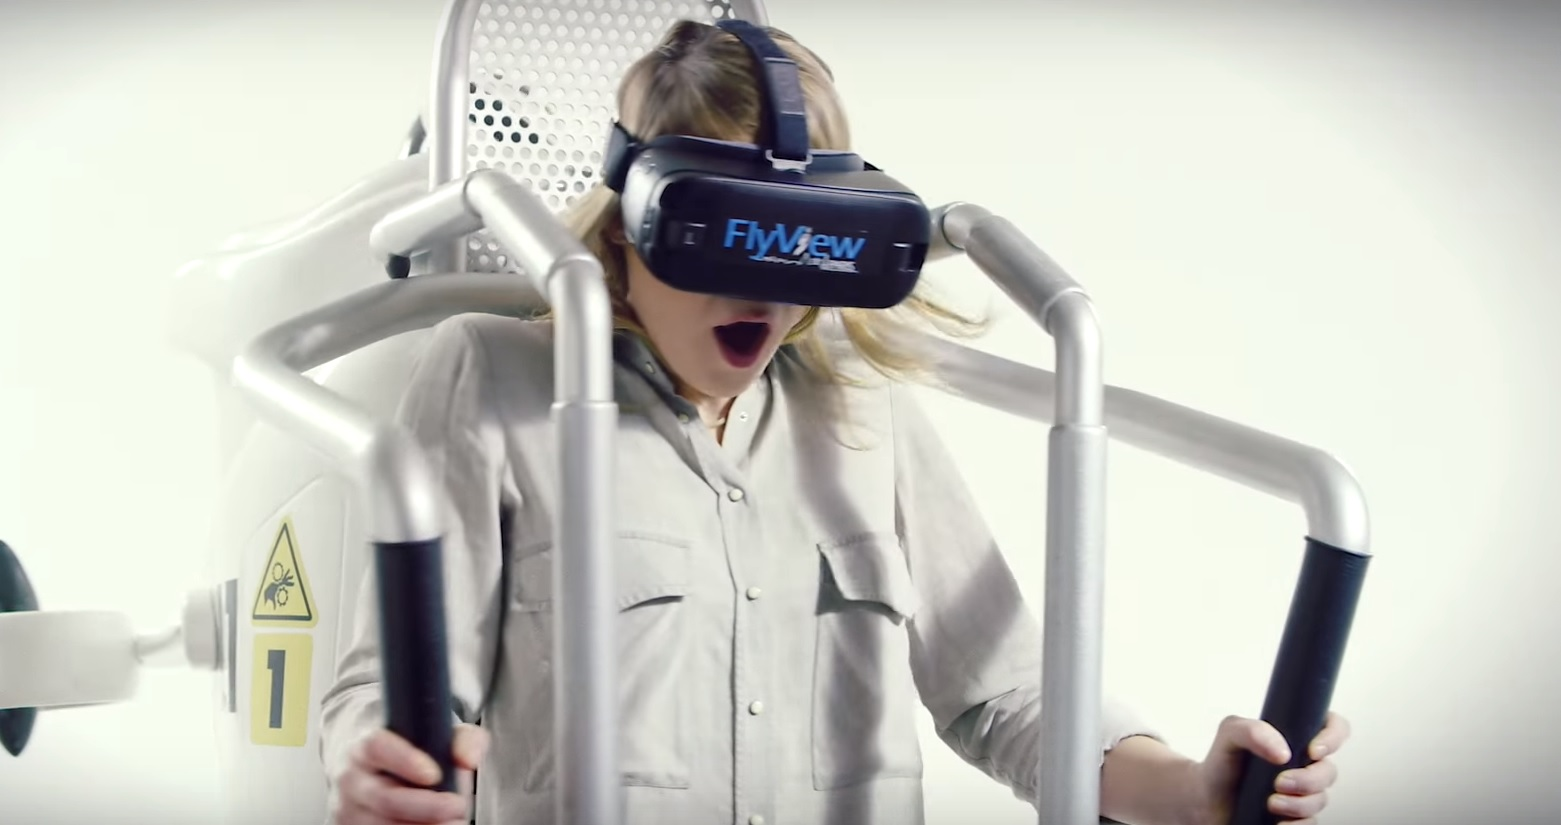 Flyview Paris jetpack virtual reality VR experience